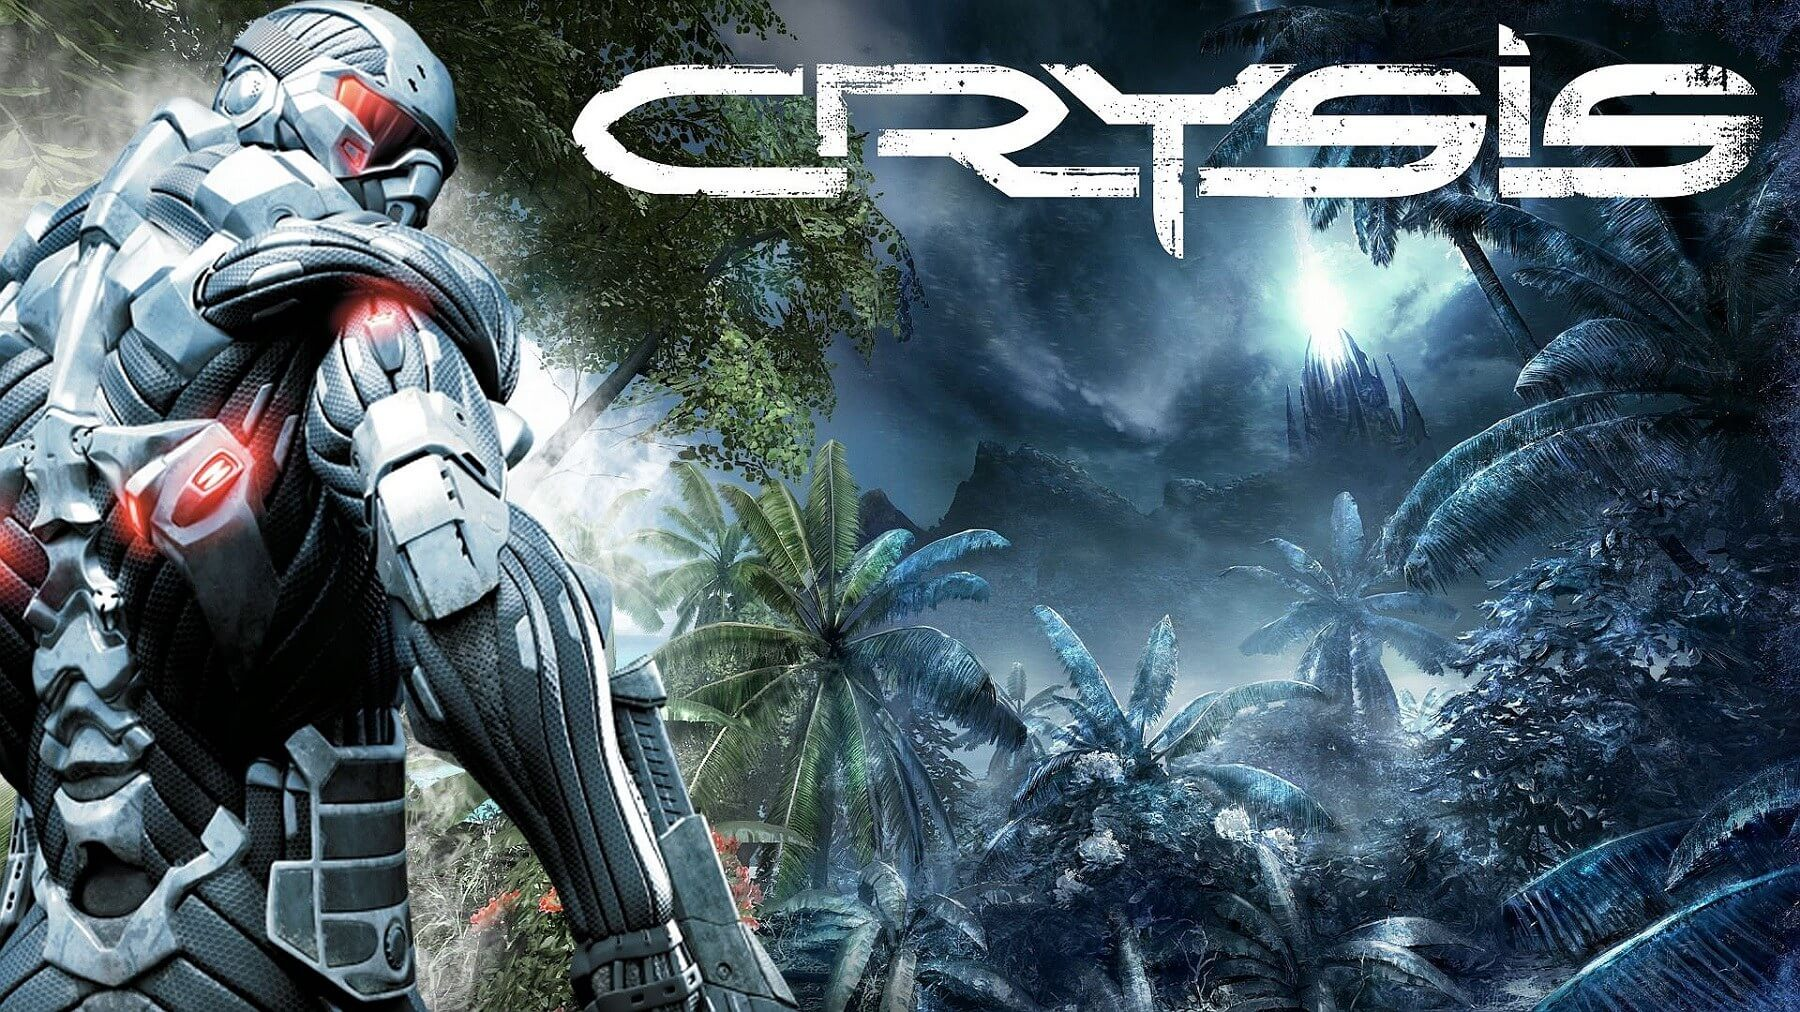 Experimental mod adds ray tracing effect to games, including Crysis